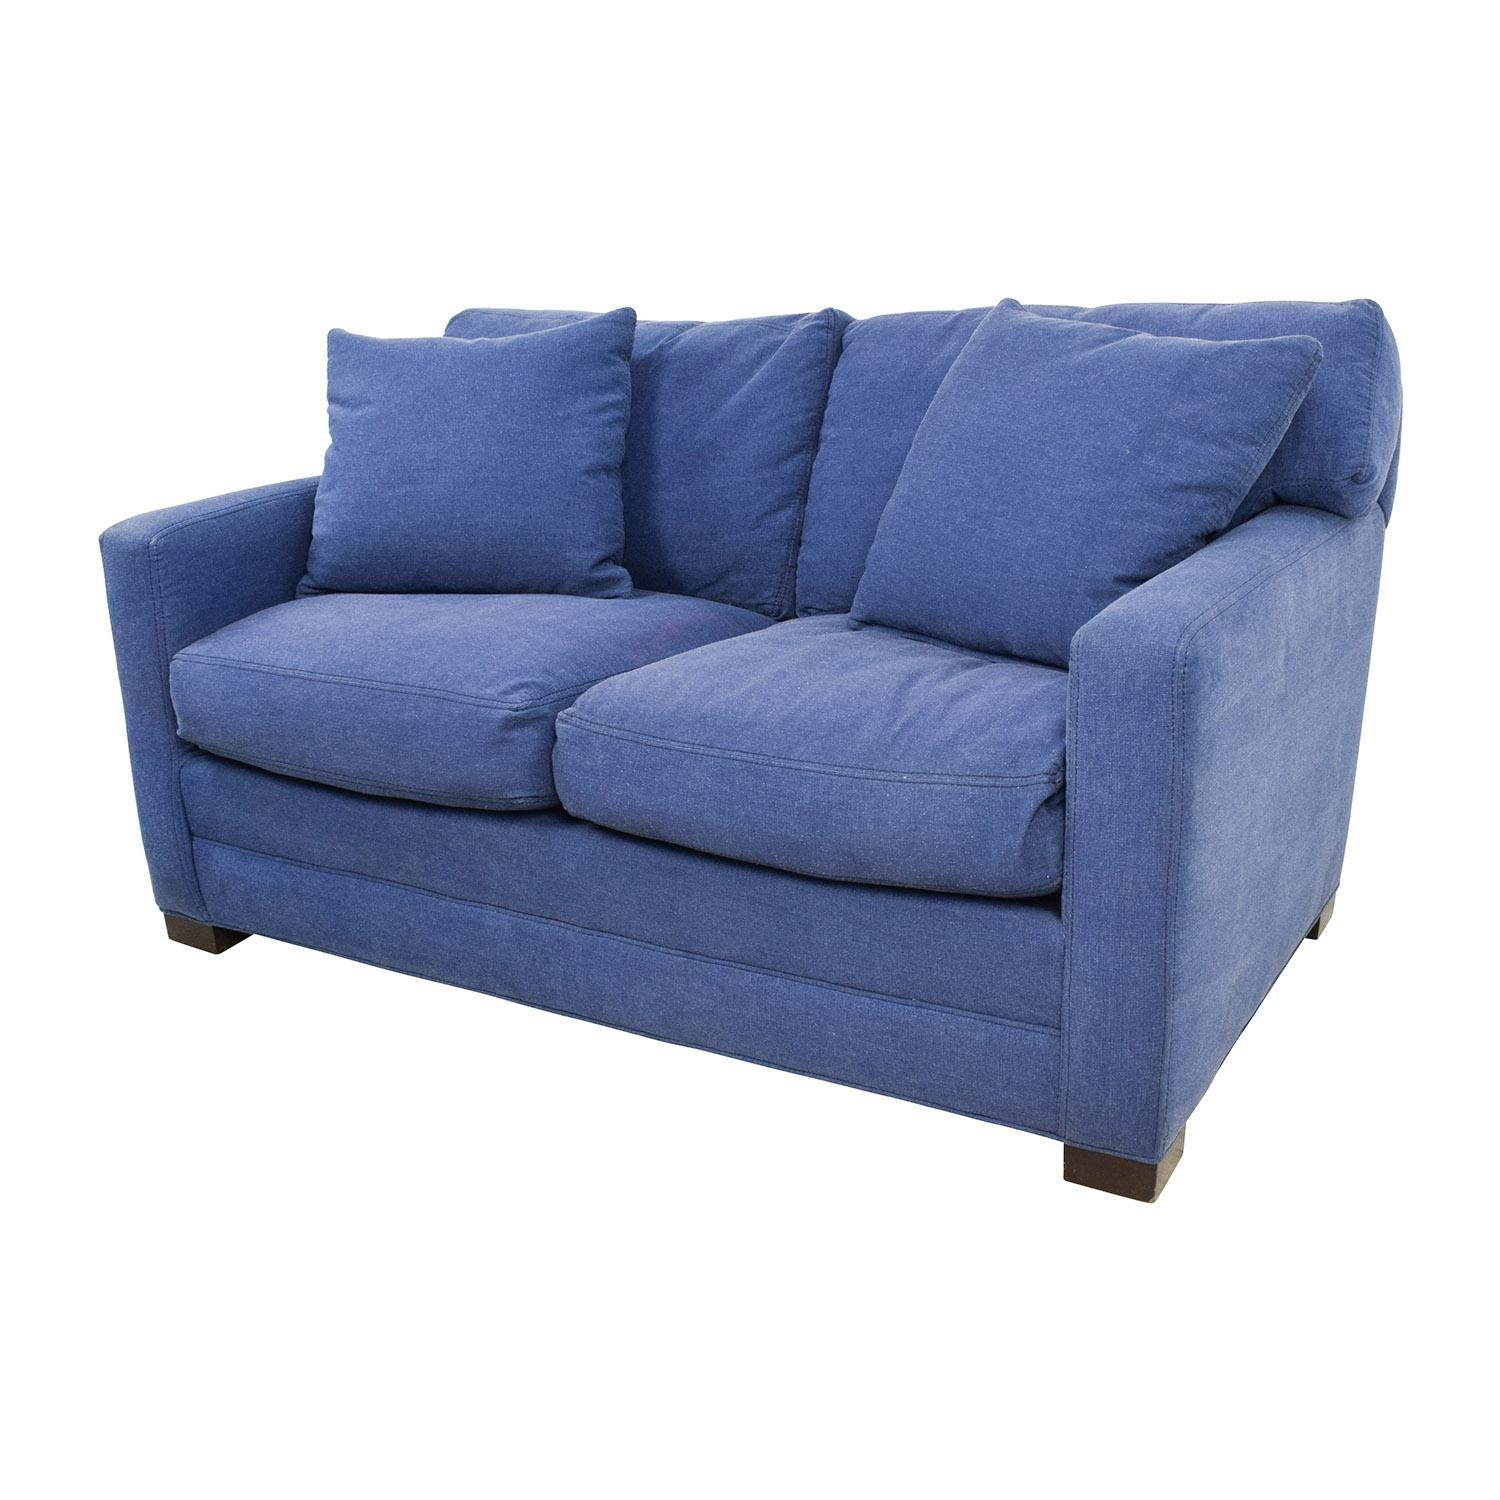 79% Off – Lee Industries Lee Industries Denim Blue Loveseat / Sofas With Regard To Denim Loveseats (View 9 of 20)